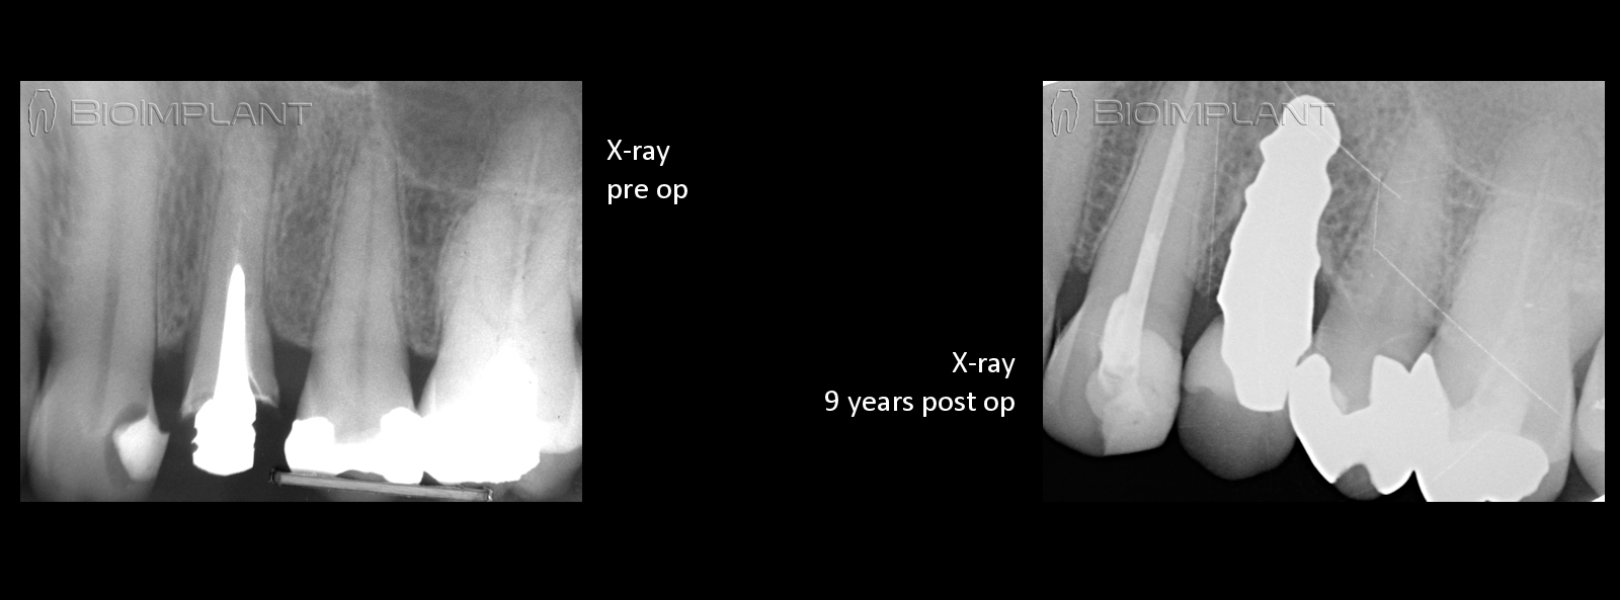 pre op and 9 years follow up ceramic implant keramik implantat